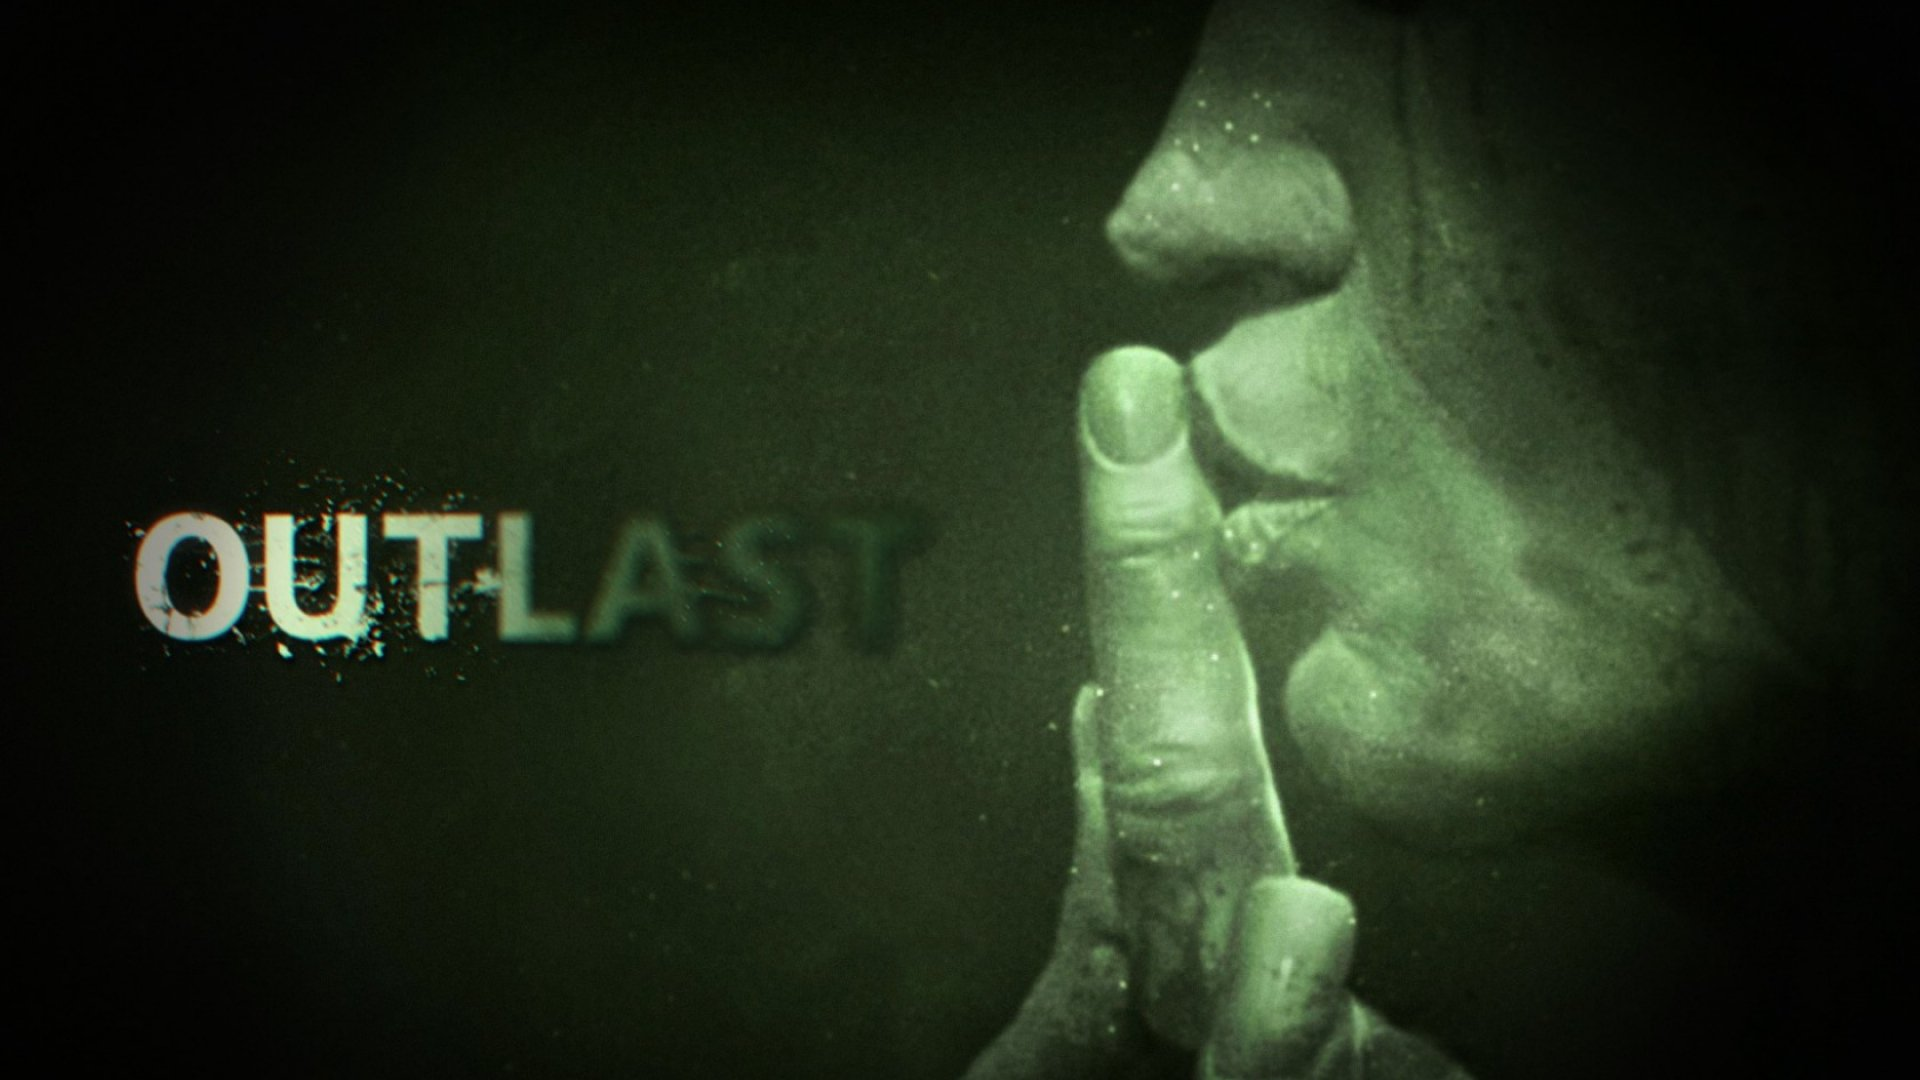 1920x1080 - Outlast HD Wallpapers 13